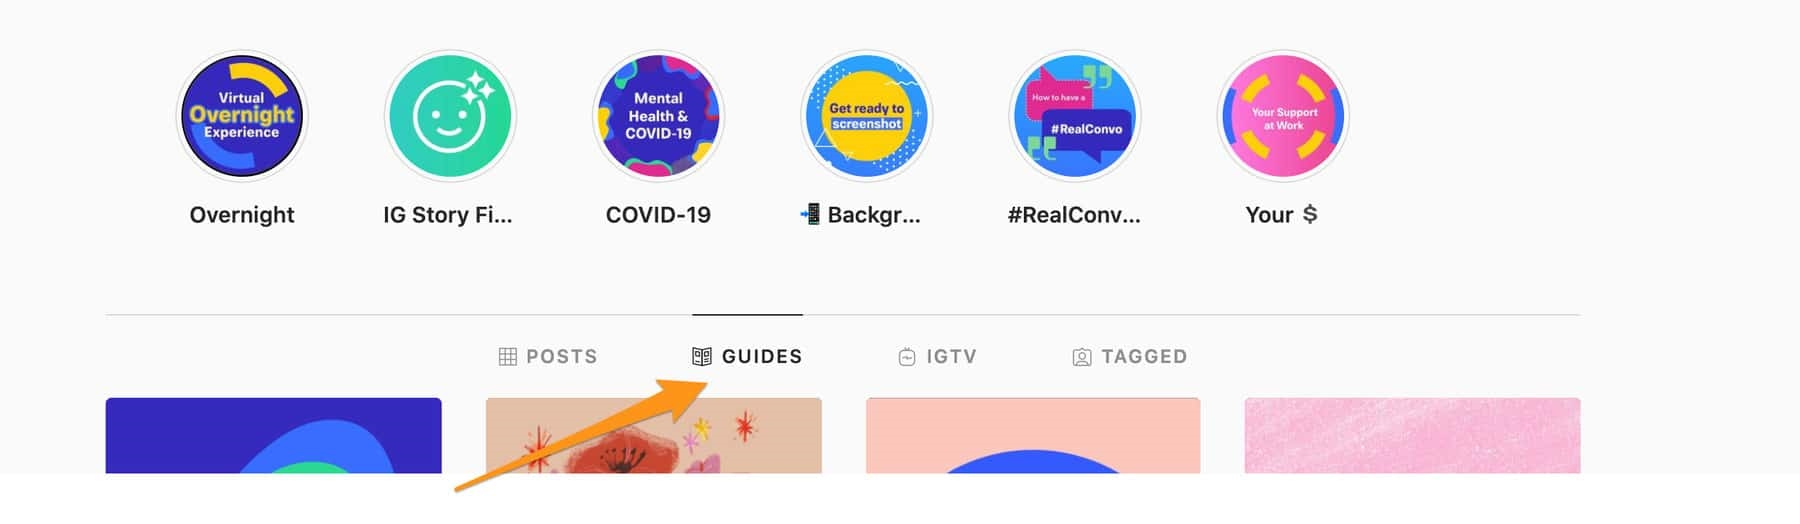 Instagram Guides: Here's Everything You Need to Know